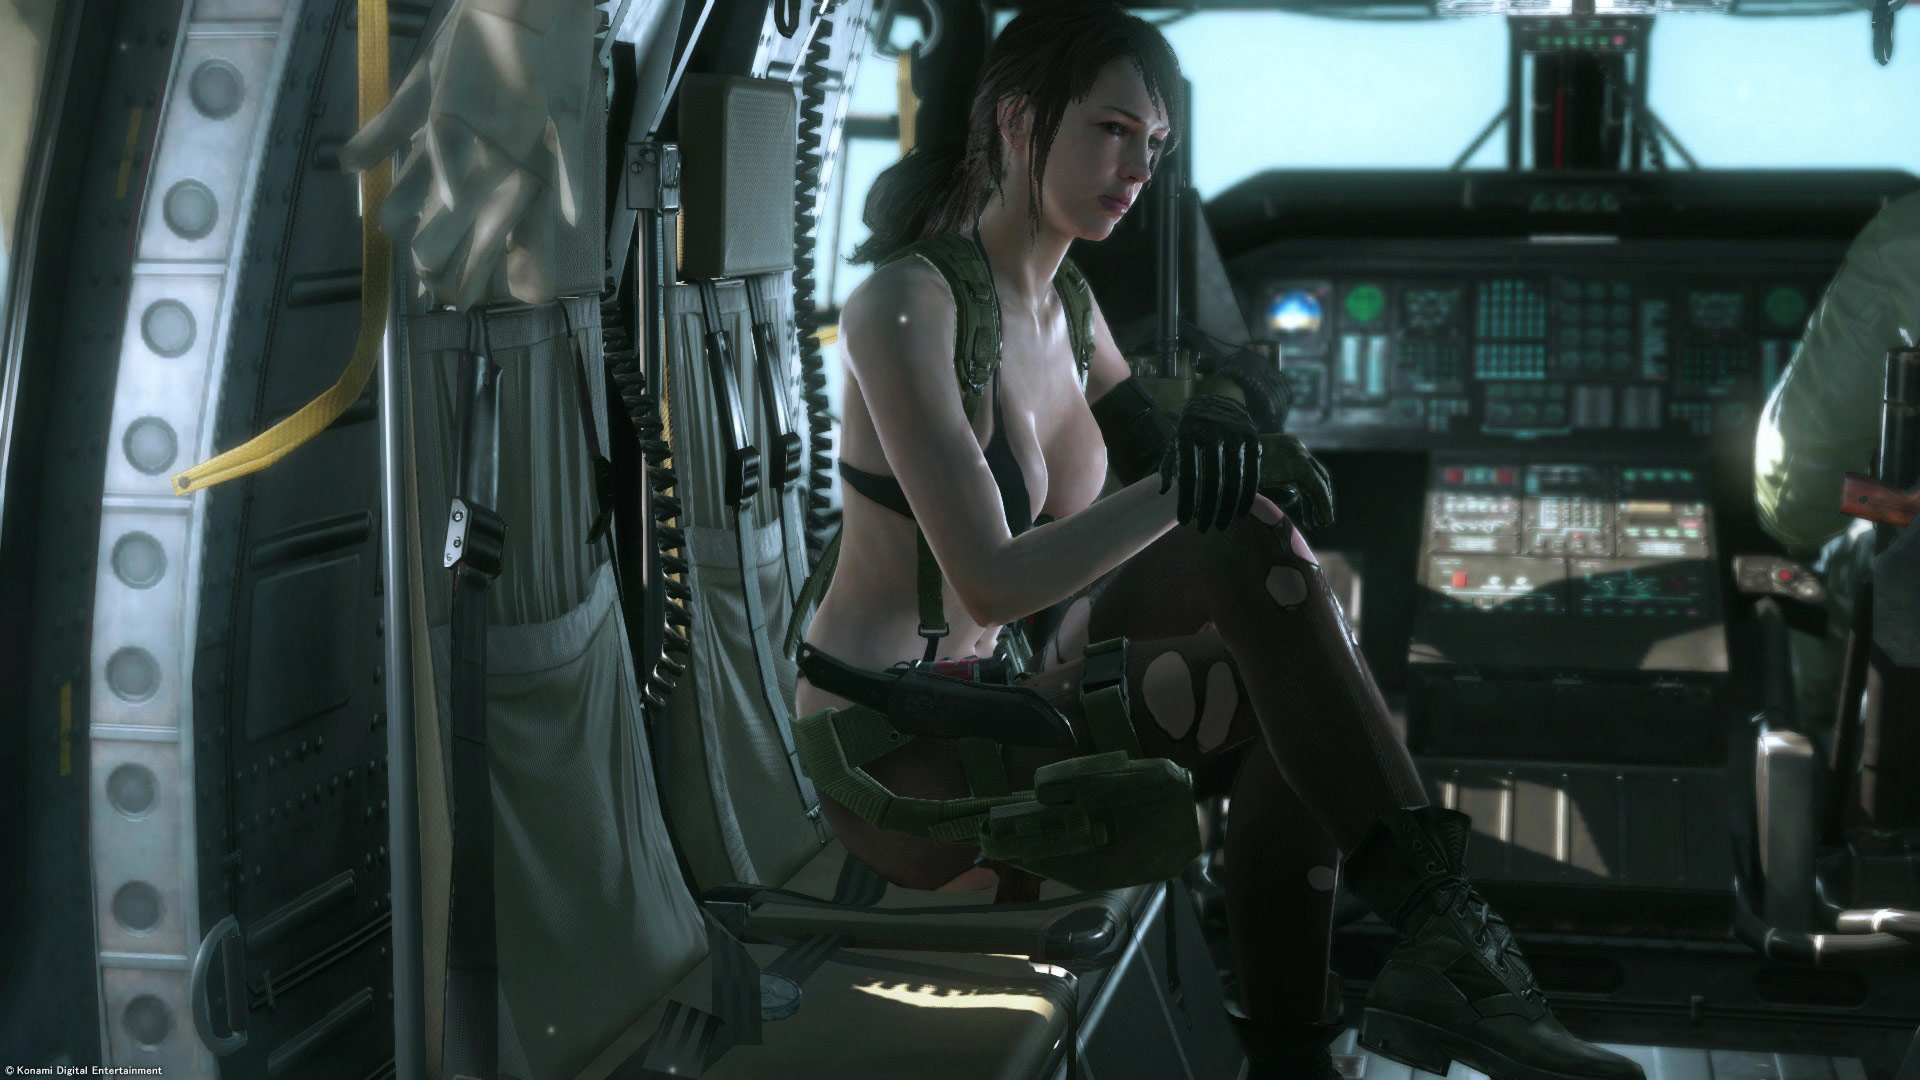 How to get Quiet back in Metal Gear Solid 5: The Phantom Pain